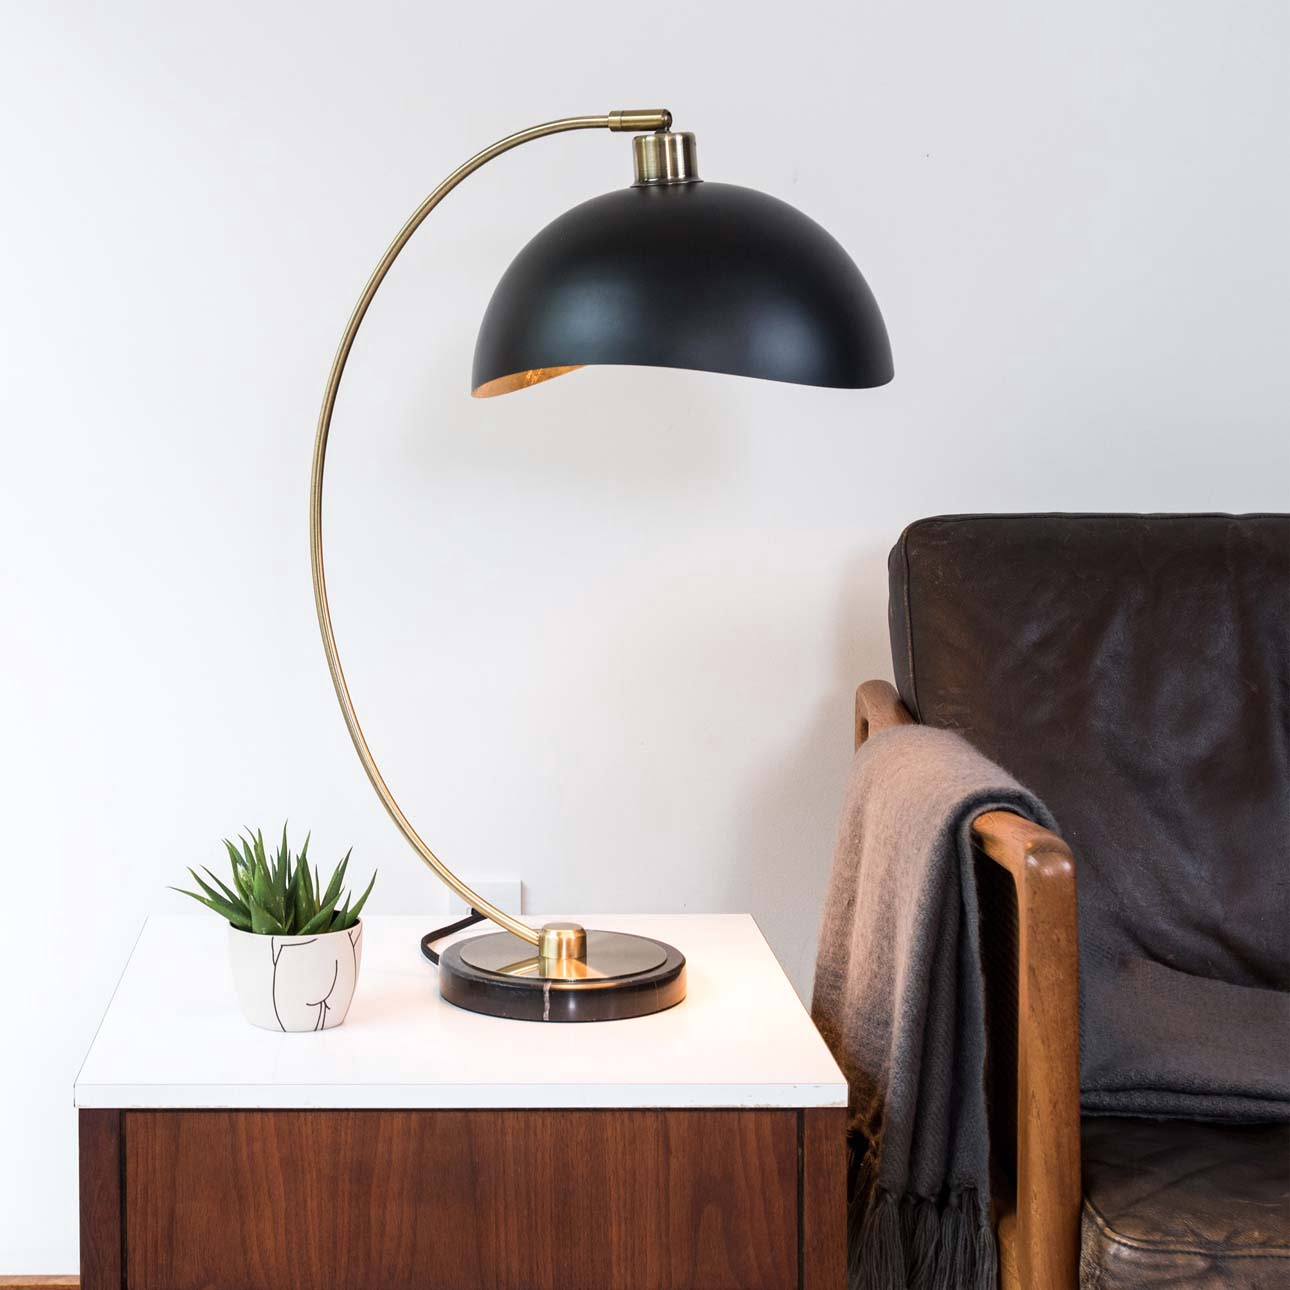 Luna Bella Table Lamp, Weathered Brass